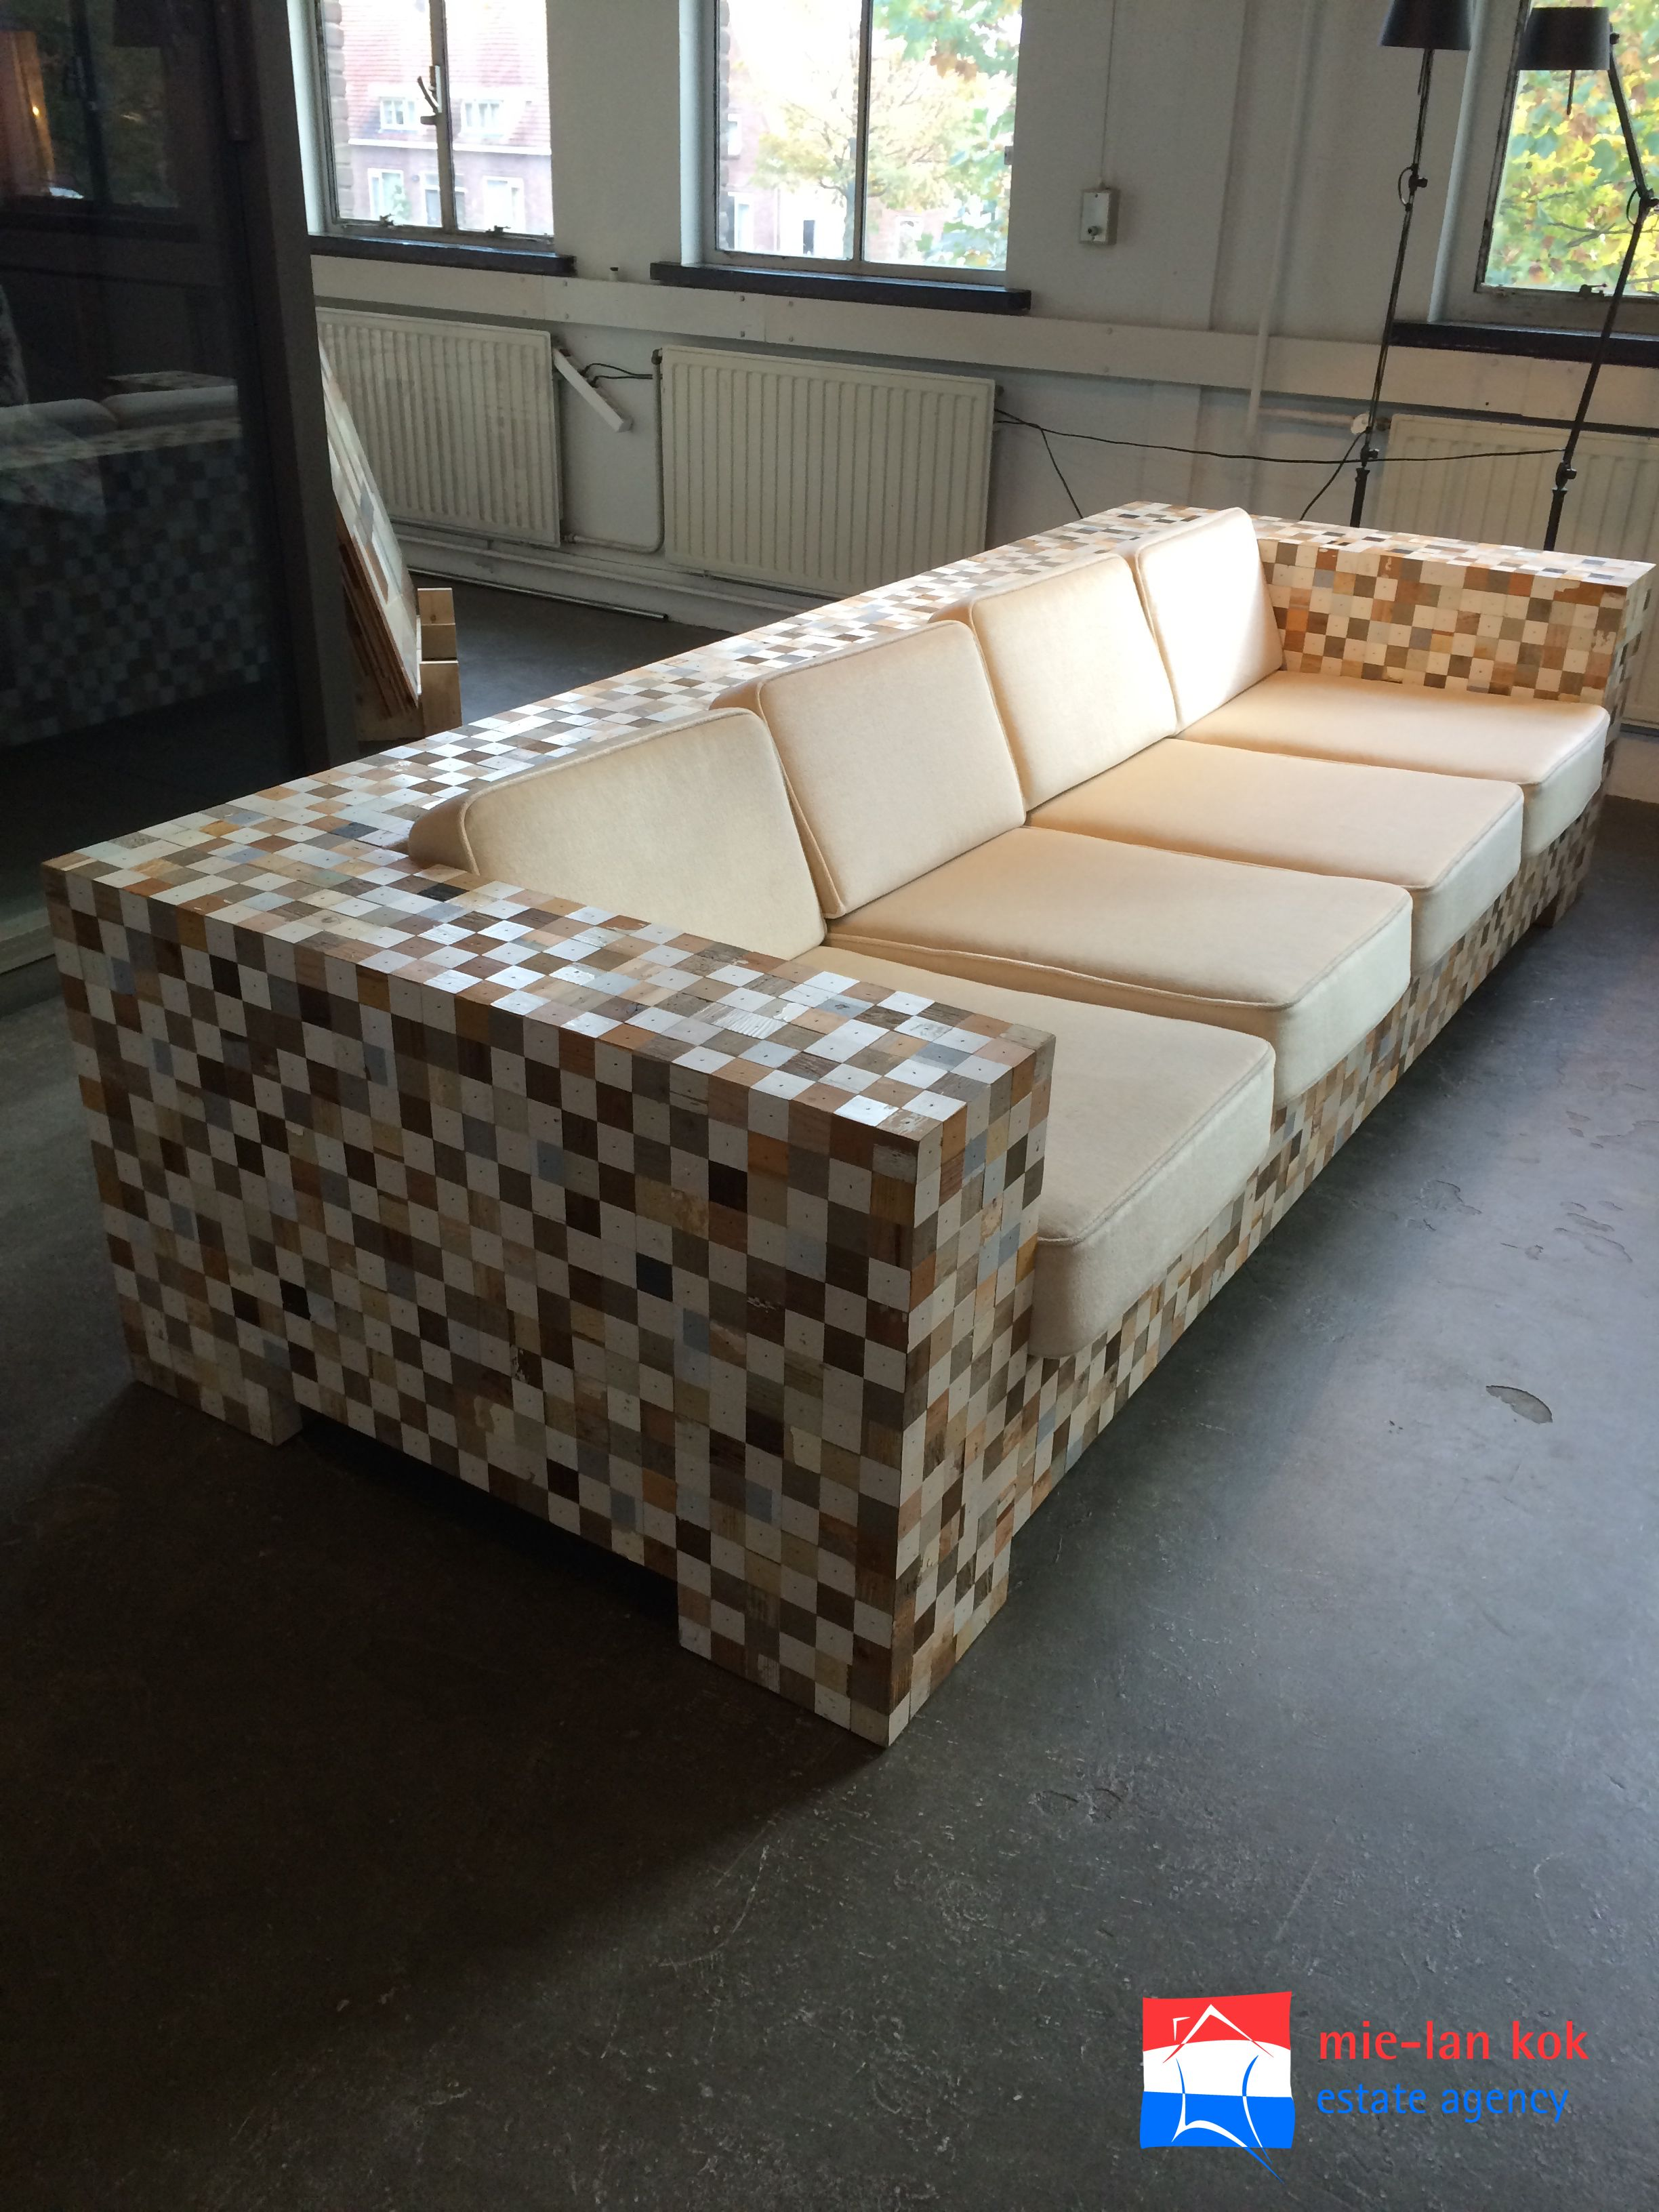 Waste Couch Of Piet Hein Eek The Waste Project Came Into Existence More Than Ten Years Ago As A Reaction To The Annoyance Of Having To Throw Awa Meubels Opslag